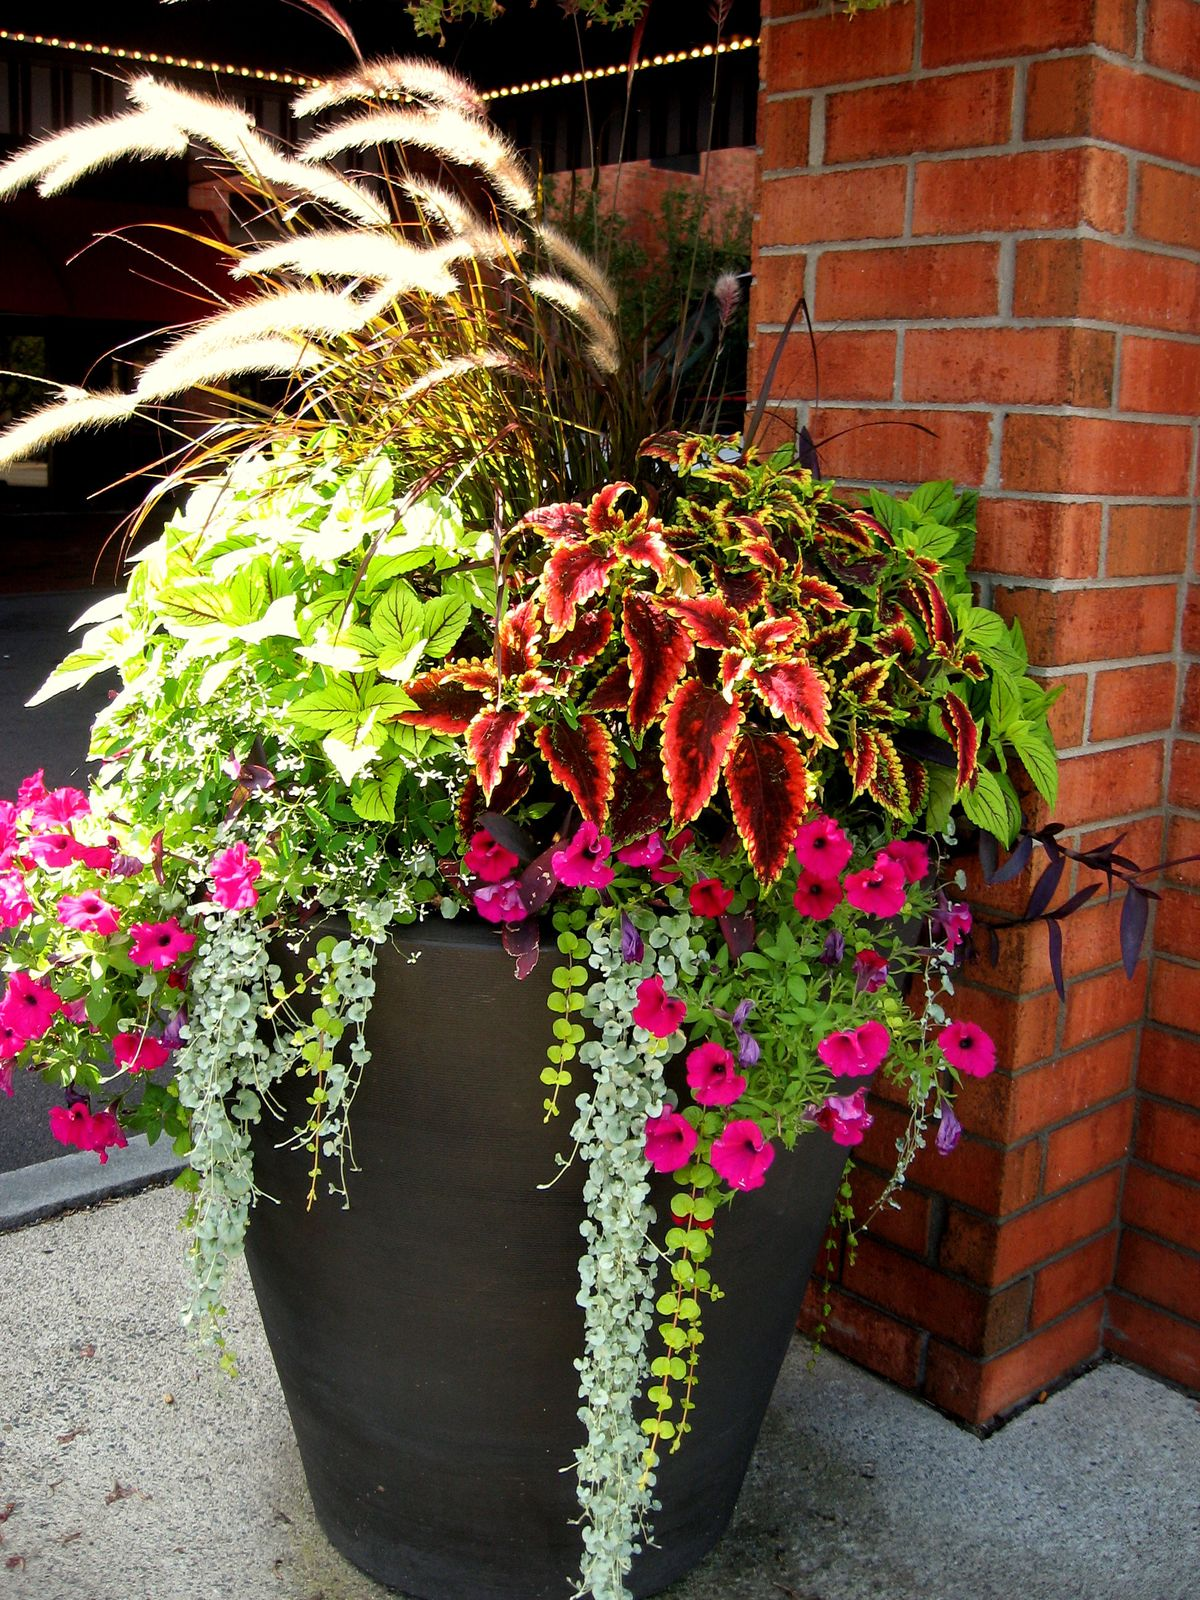 1000 images about balcony container gardening on pinterest container garden window boxes and. Black Bedroom Furniture Sets. Home Design Ideas